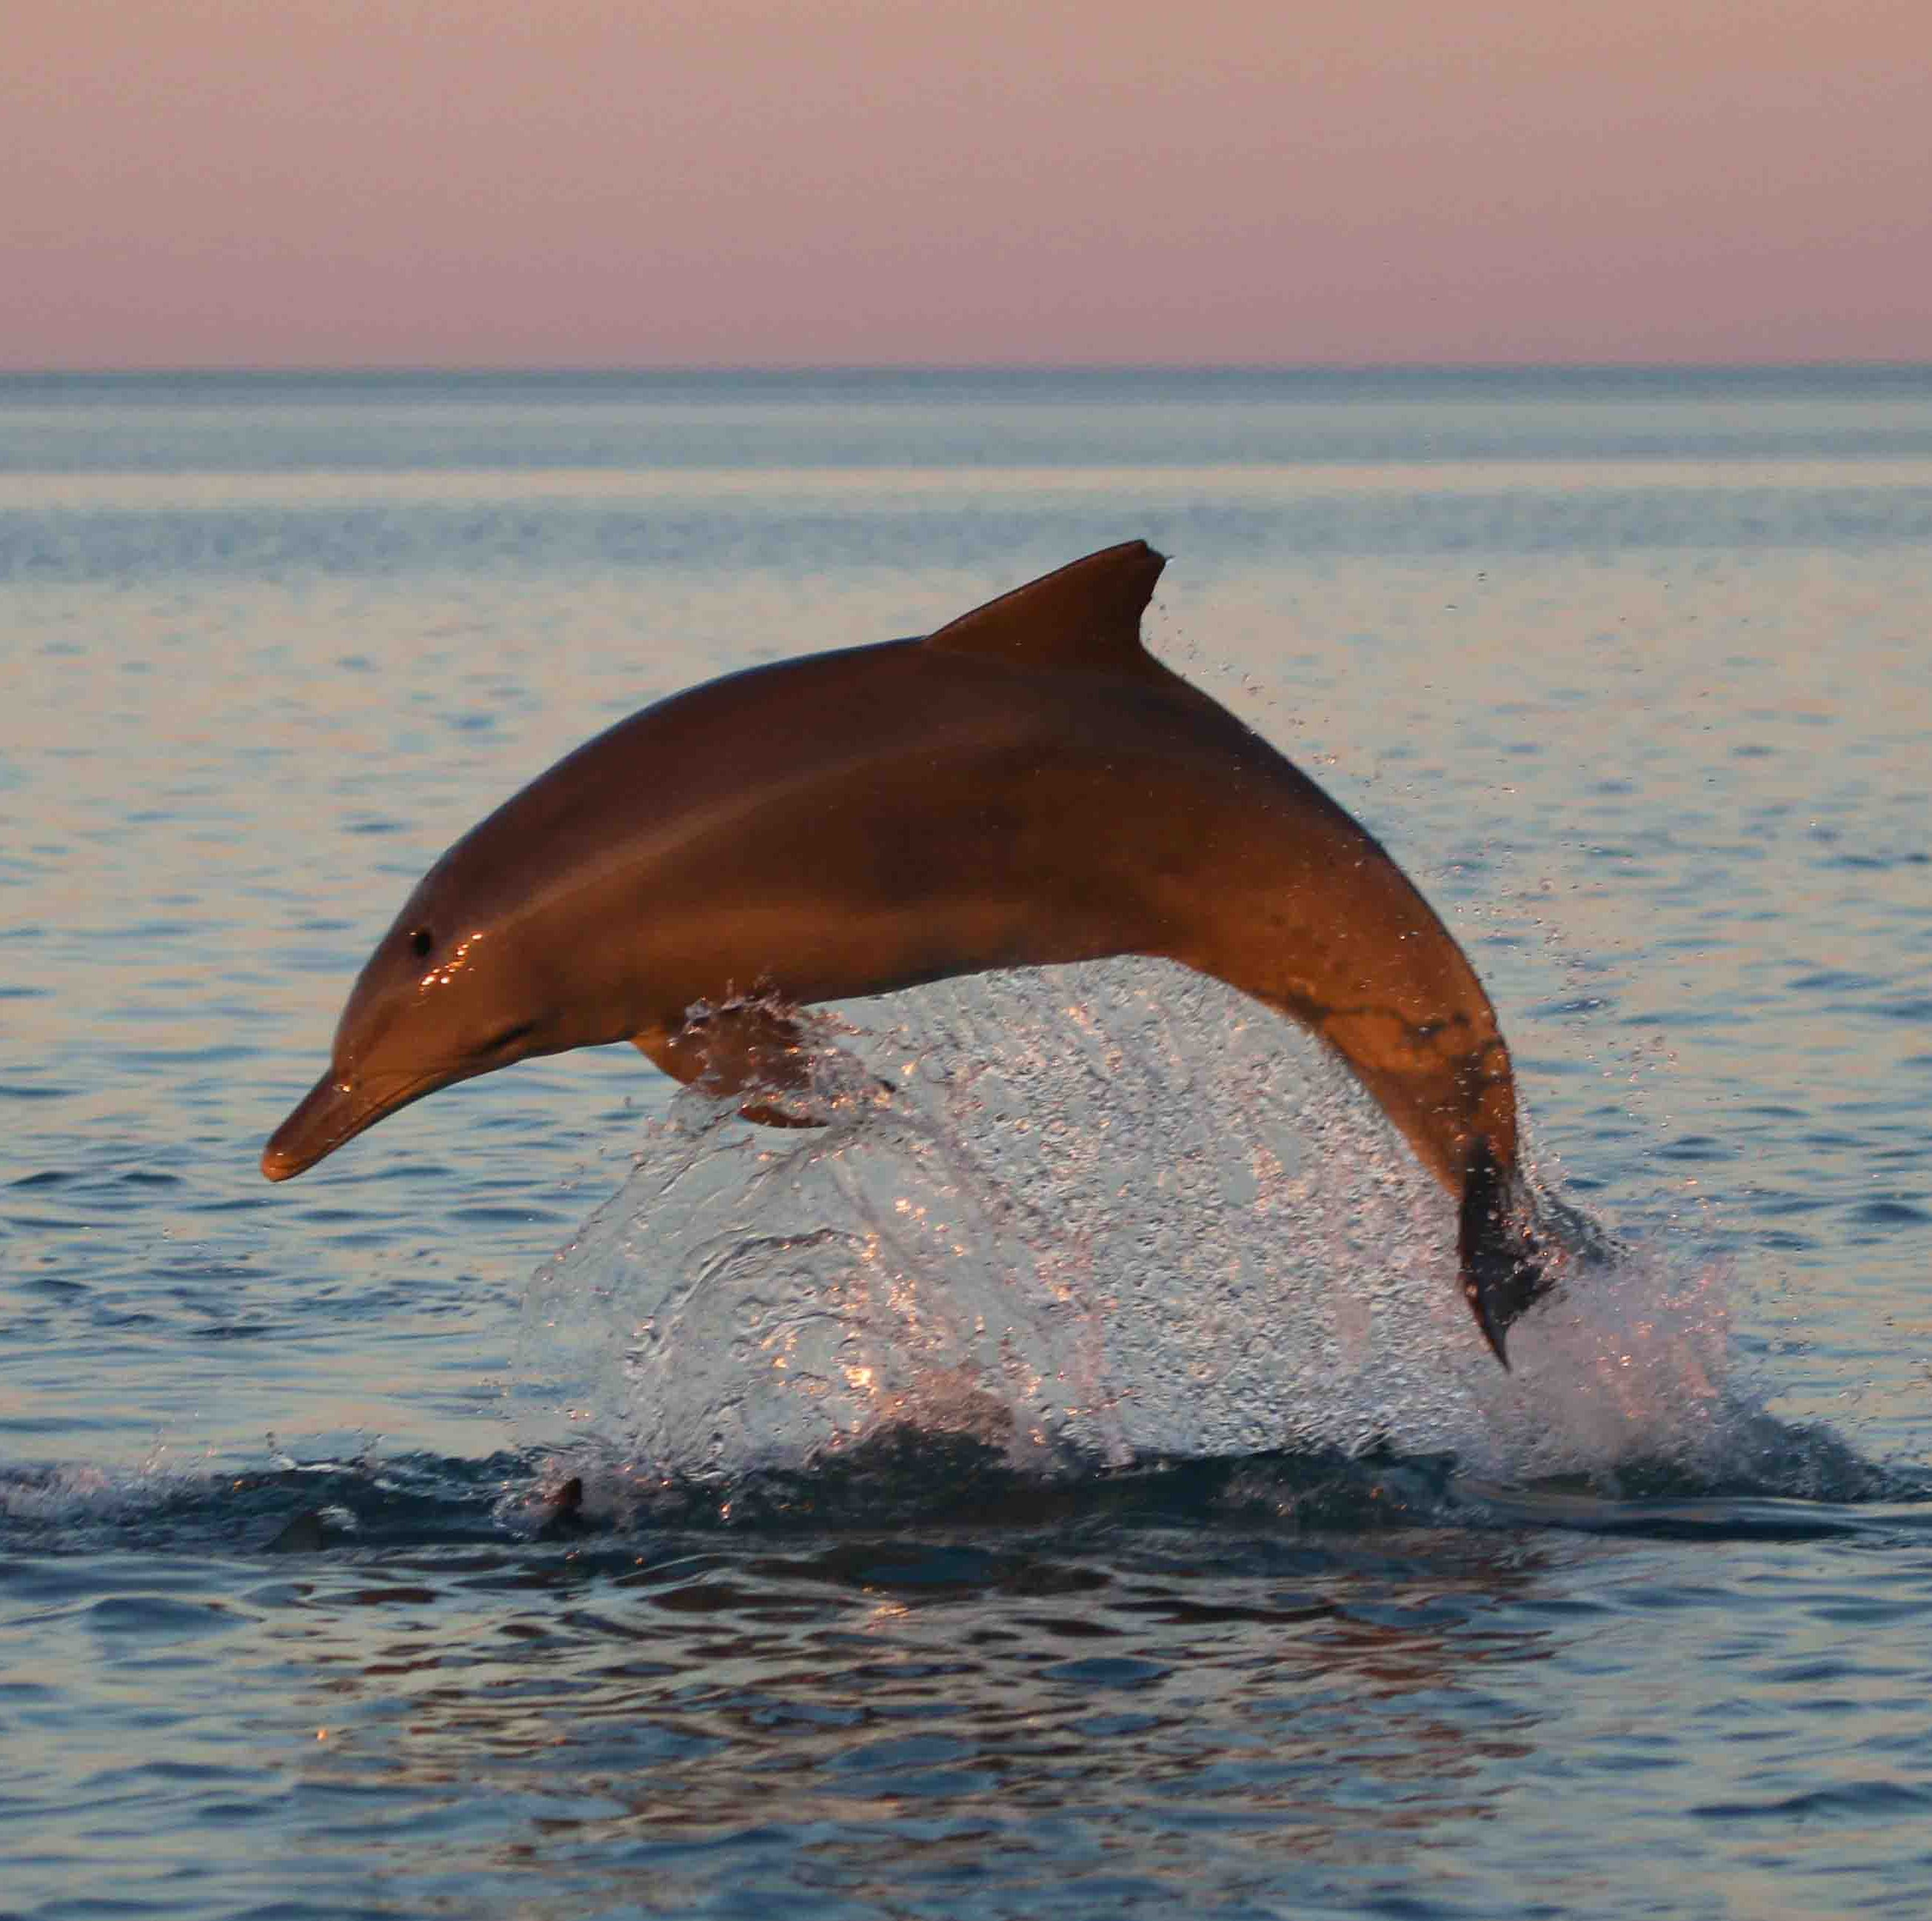 Warming seas are devastating to survival of dolphins